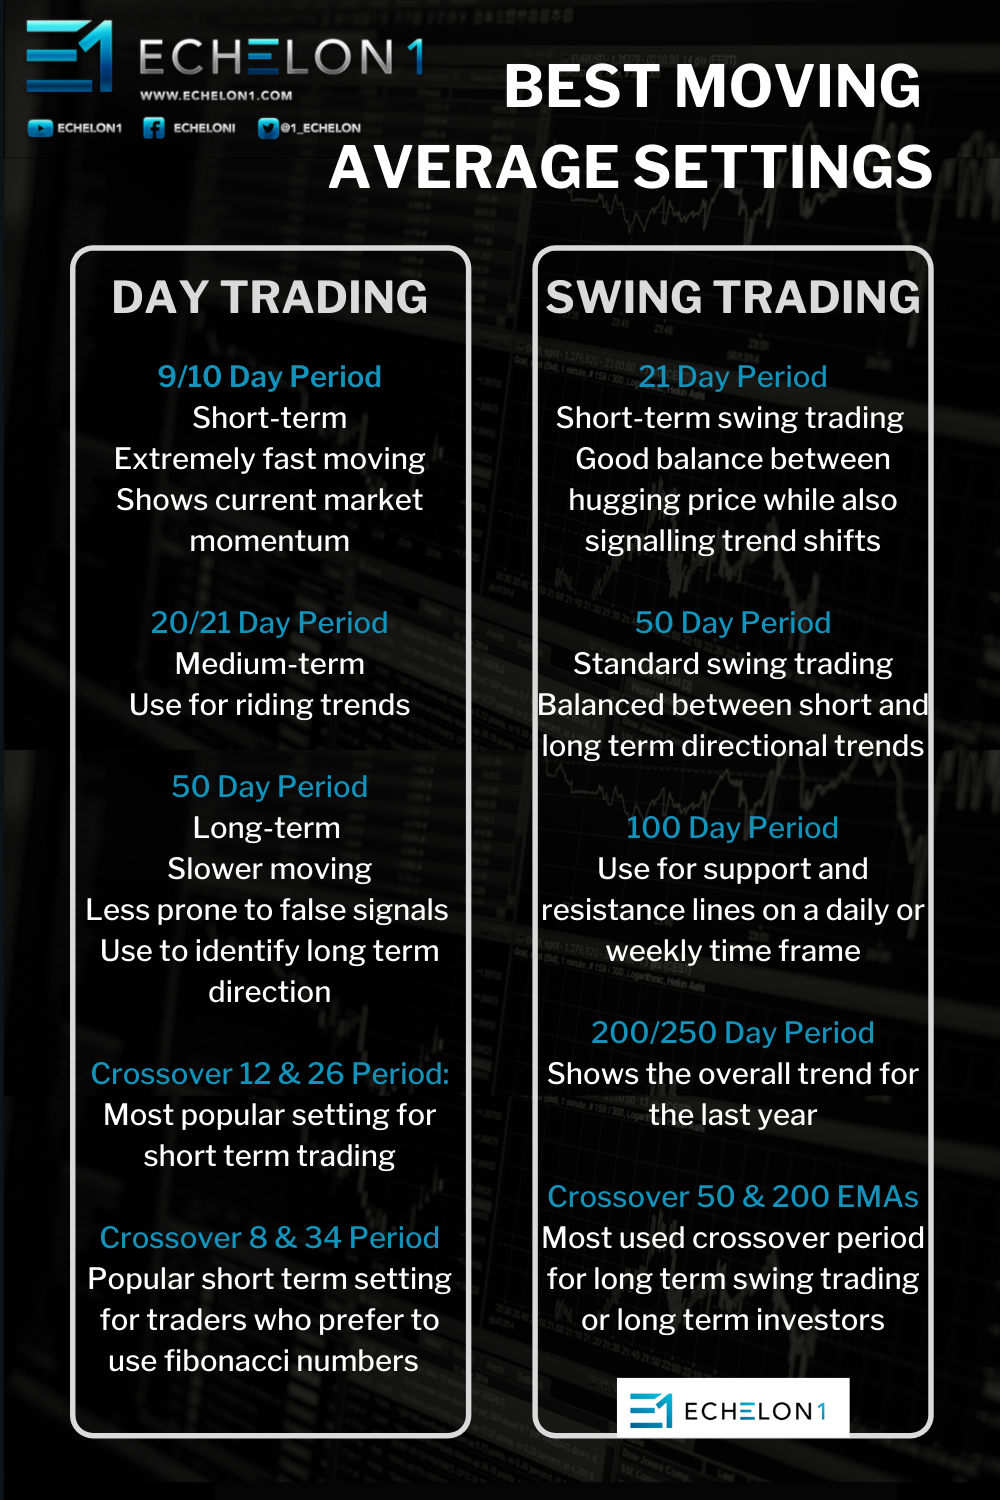 INFOGRAPHIC - Moving Averages - Best Moving Average Settings in Stock trading